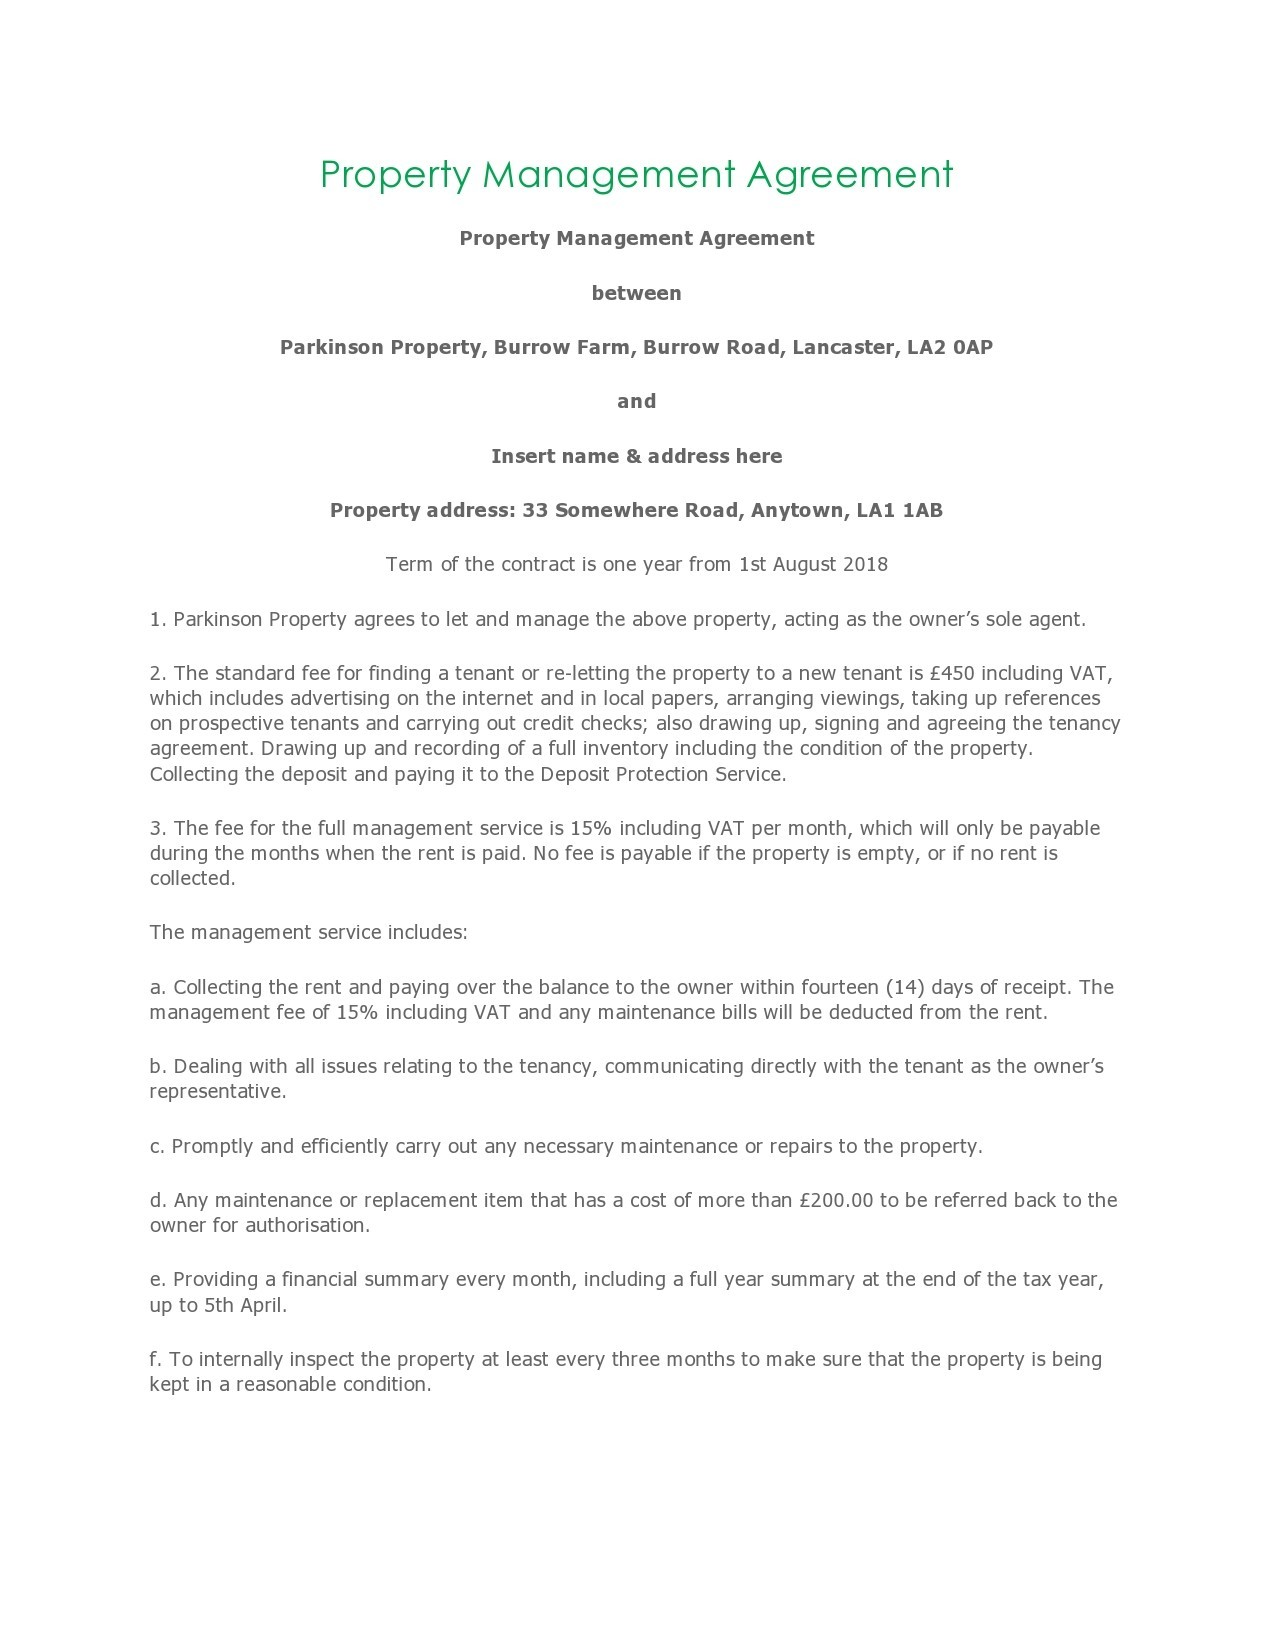 Free property management agreement 05